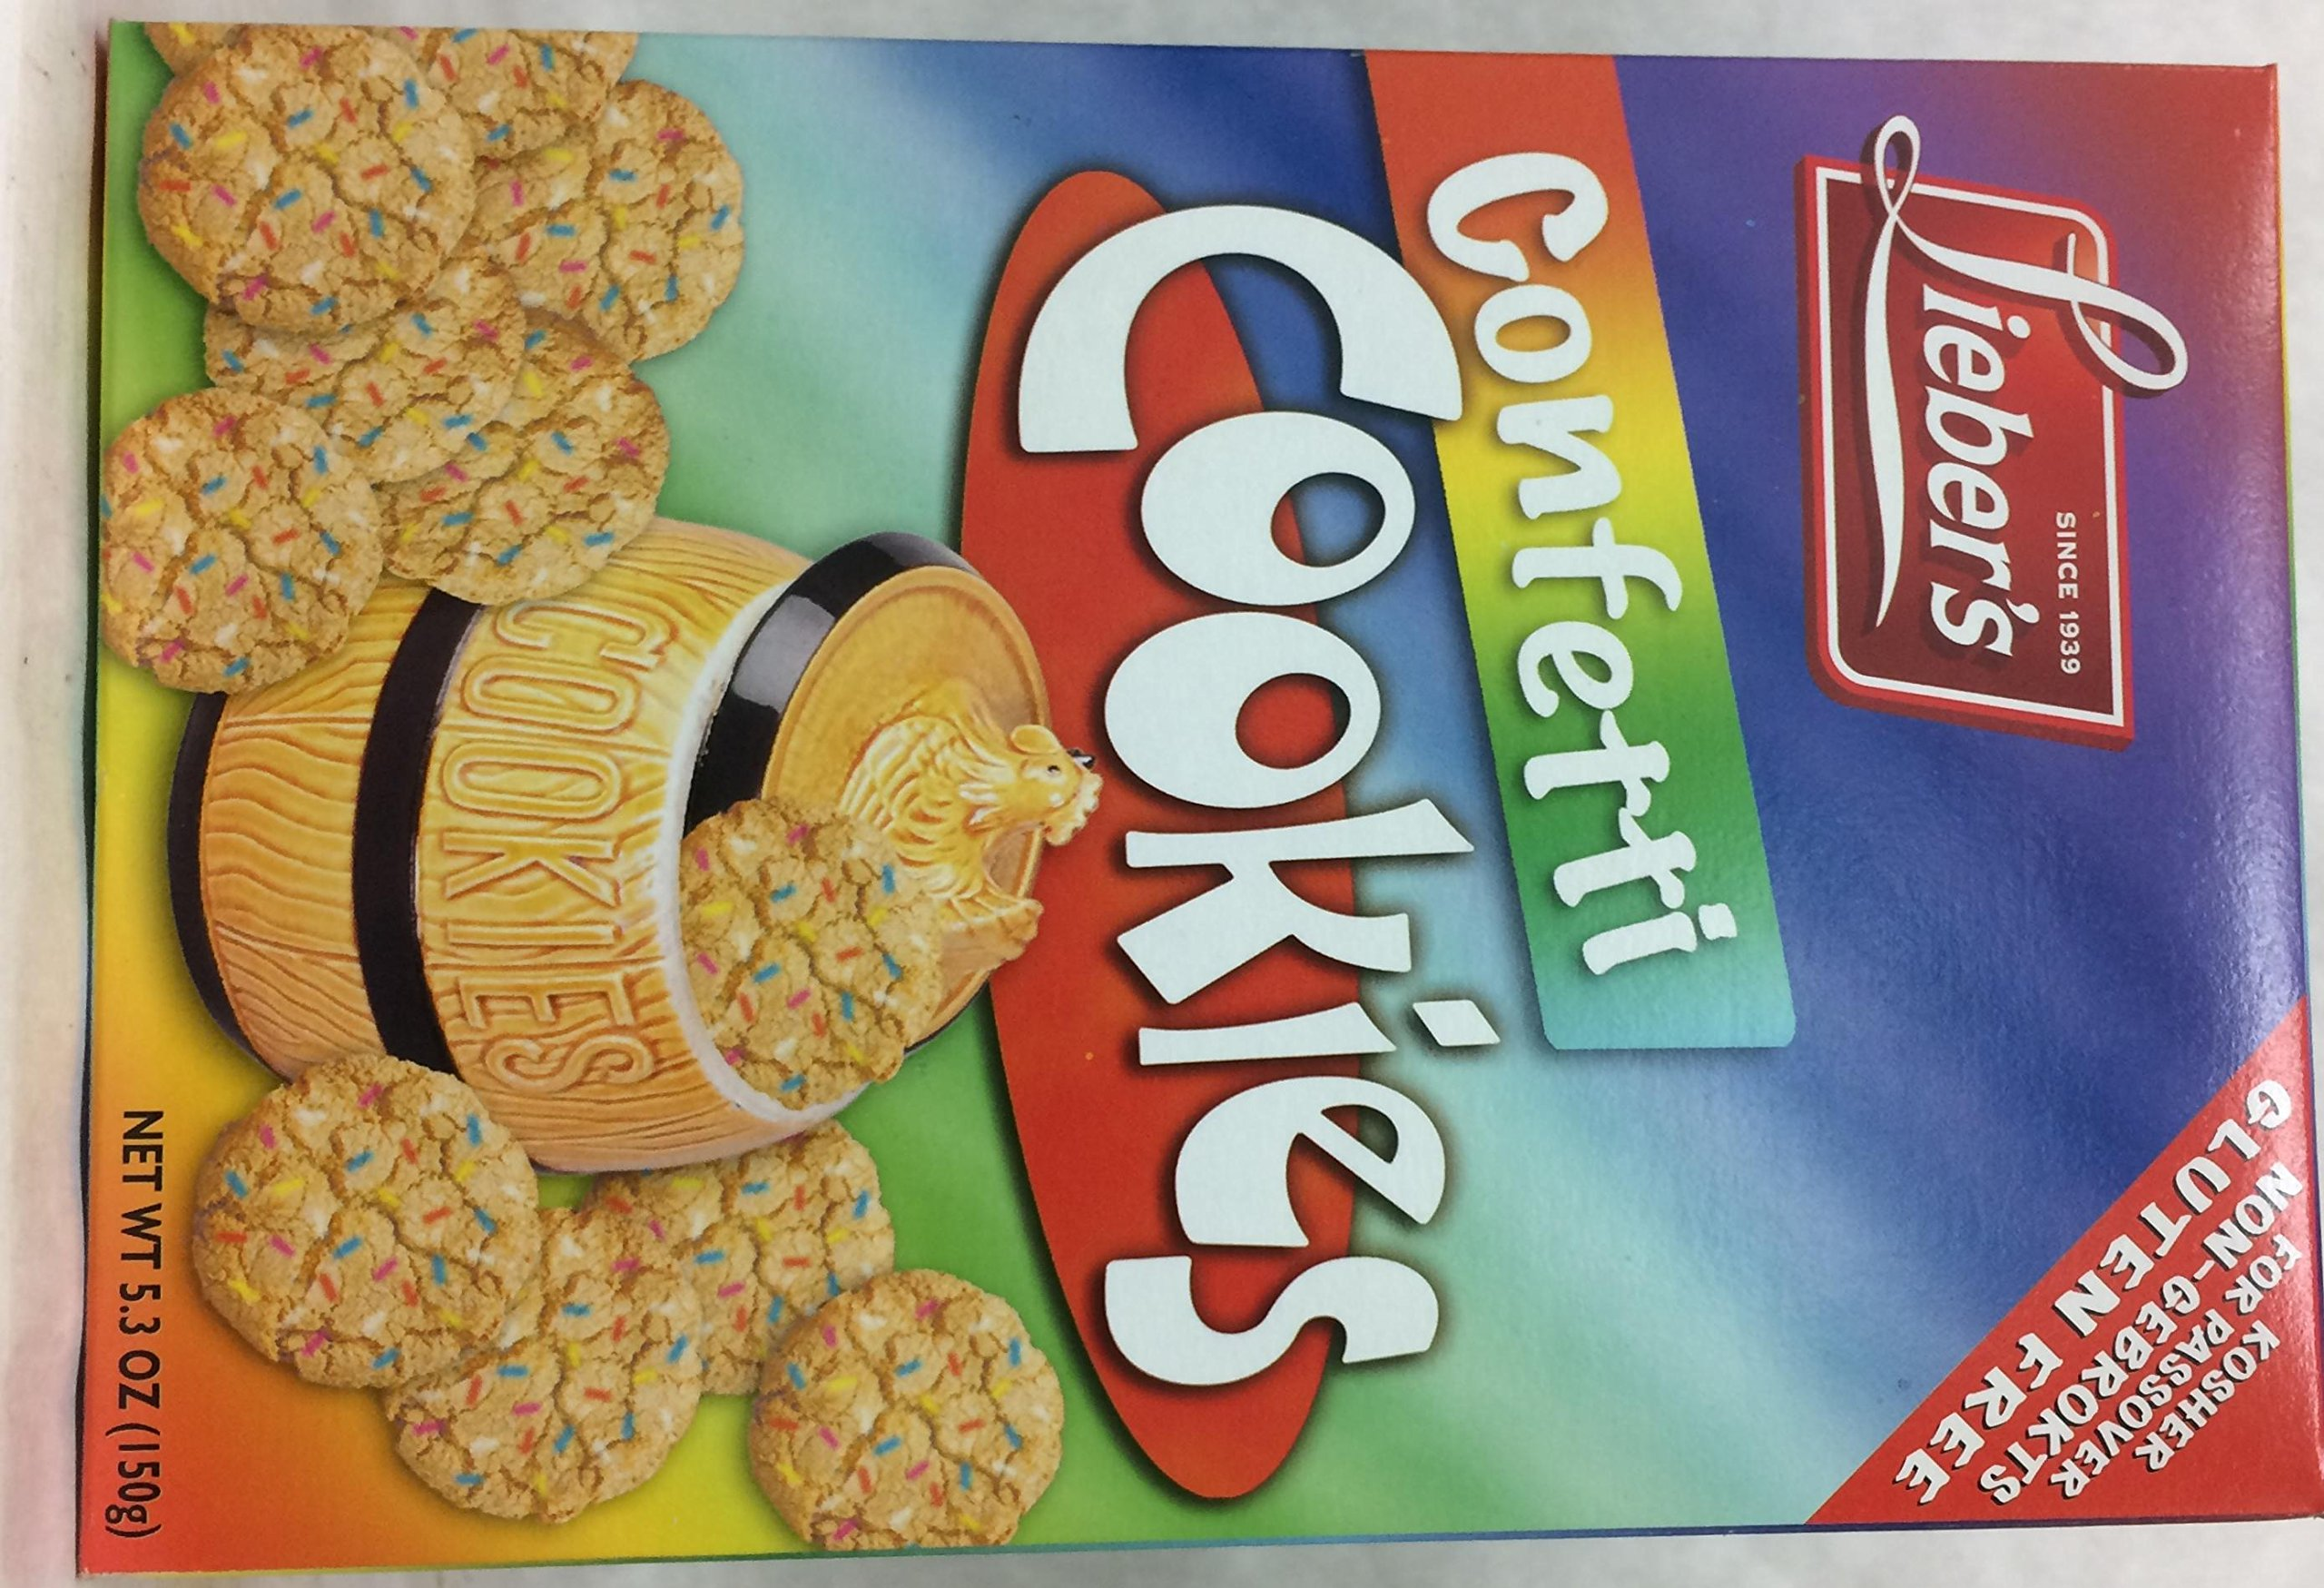 Lieber's Confetti Cookies Gluten Free Kosher for Passover 5.3 oz. Pack of 3.